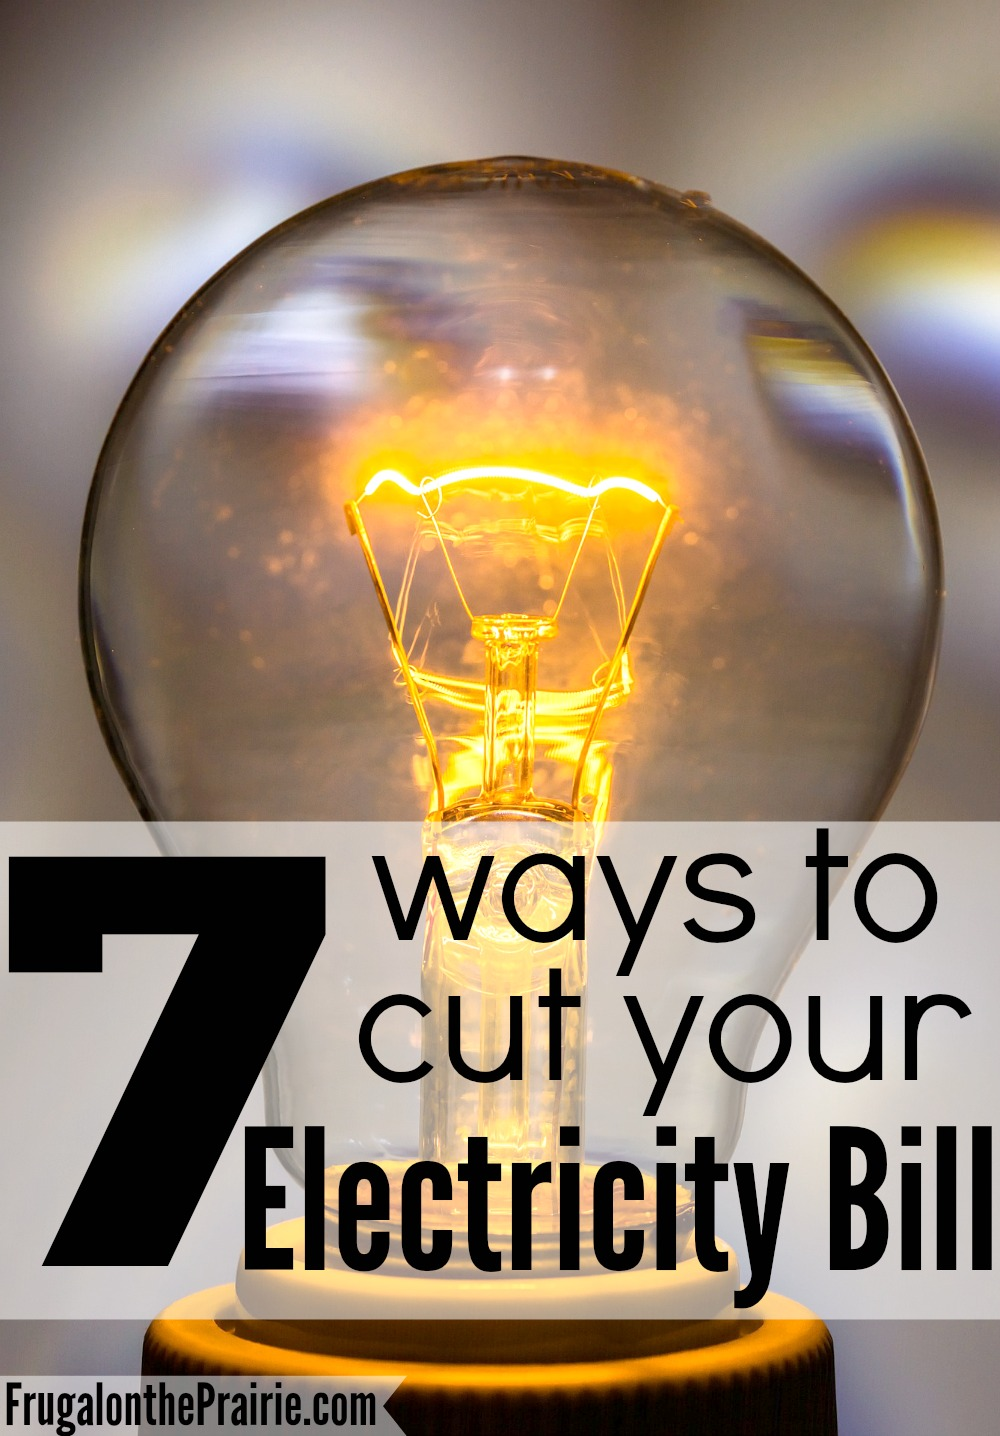 Summer is almost here. Are you ready for your electricity bill to go up? Here are 7 ways to cut your electricity bill.